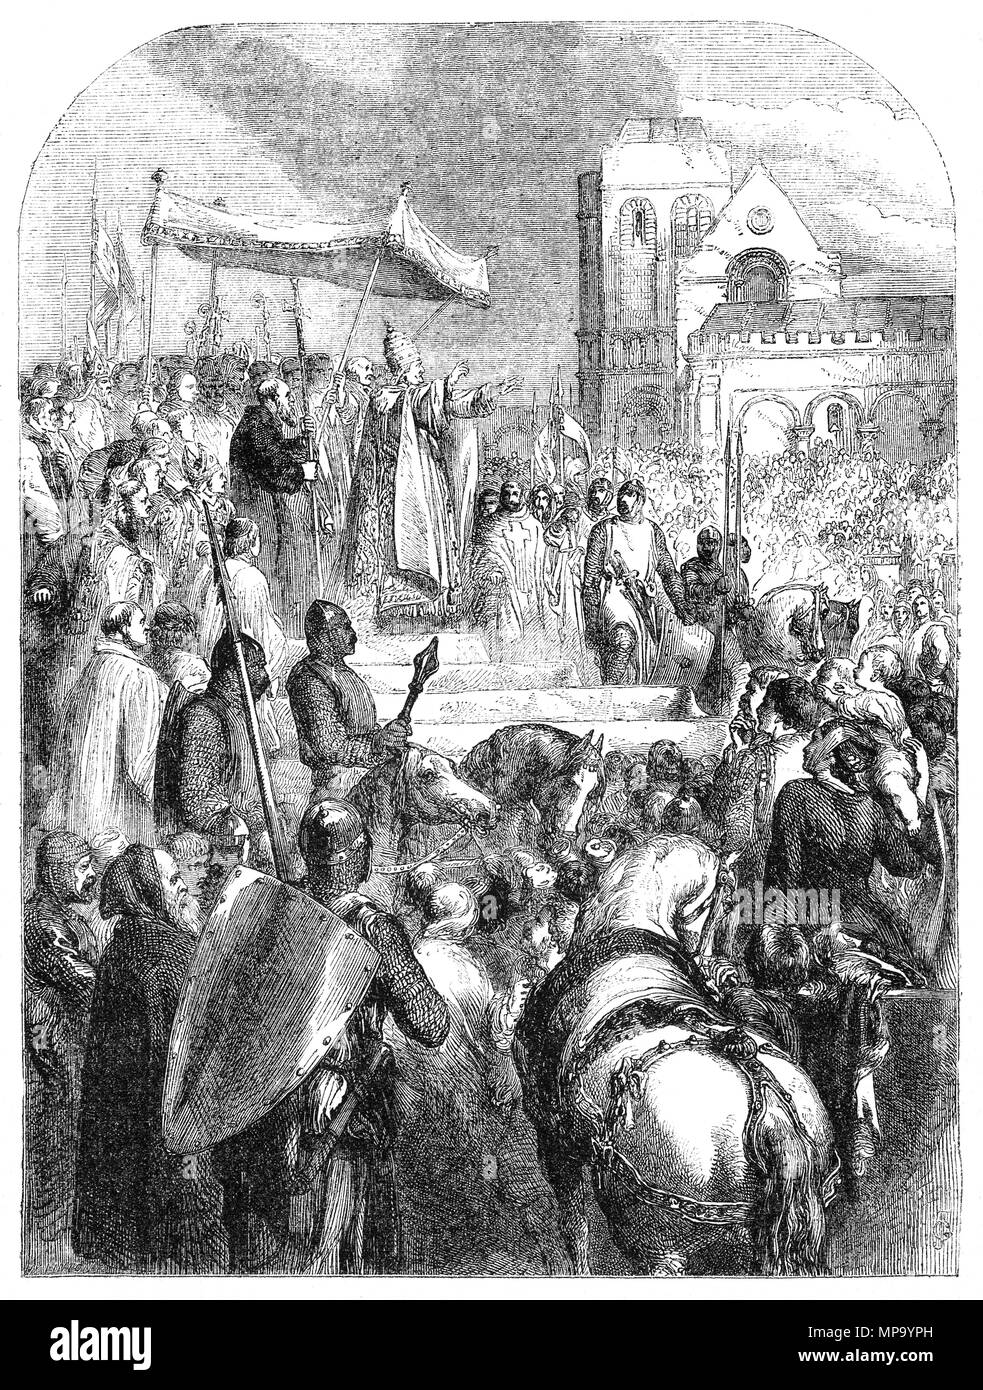 Pope Urban II preaching during Council of Clermont in 1095 for the First Crusade (1095–1099) to recapture the Holy Land. It was a military expedition to aid the Byzantine Empire, which had recently lost most of Anatolia to the Seljuq Turks. The resulting military expedition of primarily Frankish nobles, known as the Princes' Crusade not only re-captured Anatolia but went on to conquer the Holy Land (the Levant), which had fallen to Islamic expansion as early as in the 7th century, and culminated in July 1099 in the re-conquest of Jerusalem and the establishment of the Kingdom of Jerusalem. - Stock Image